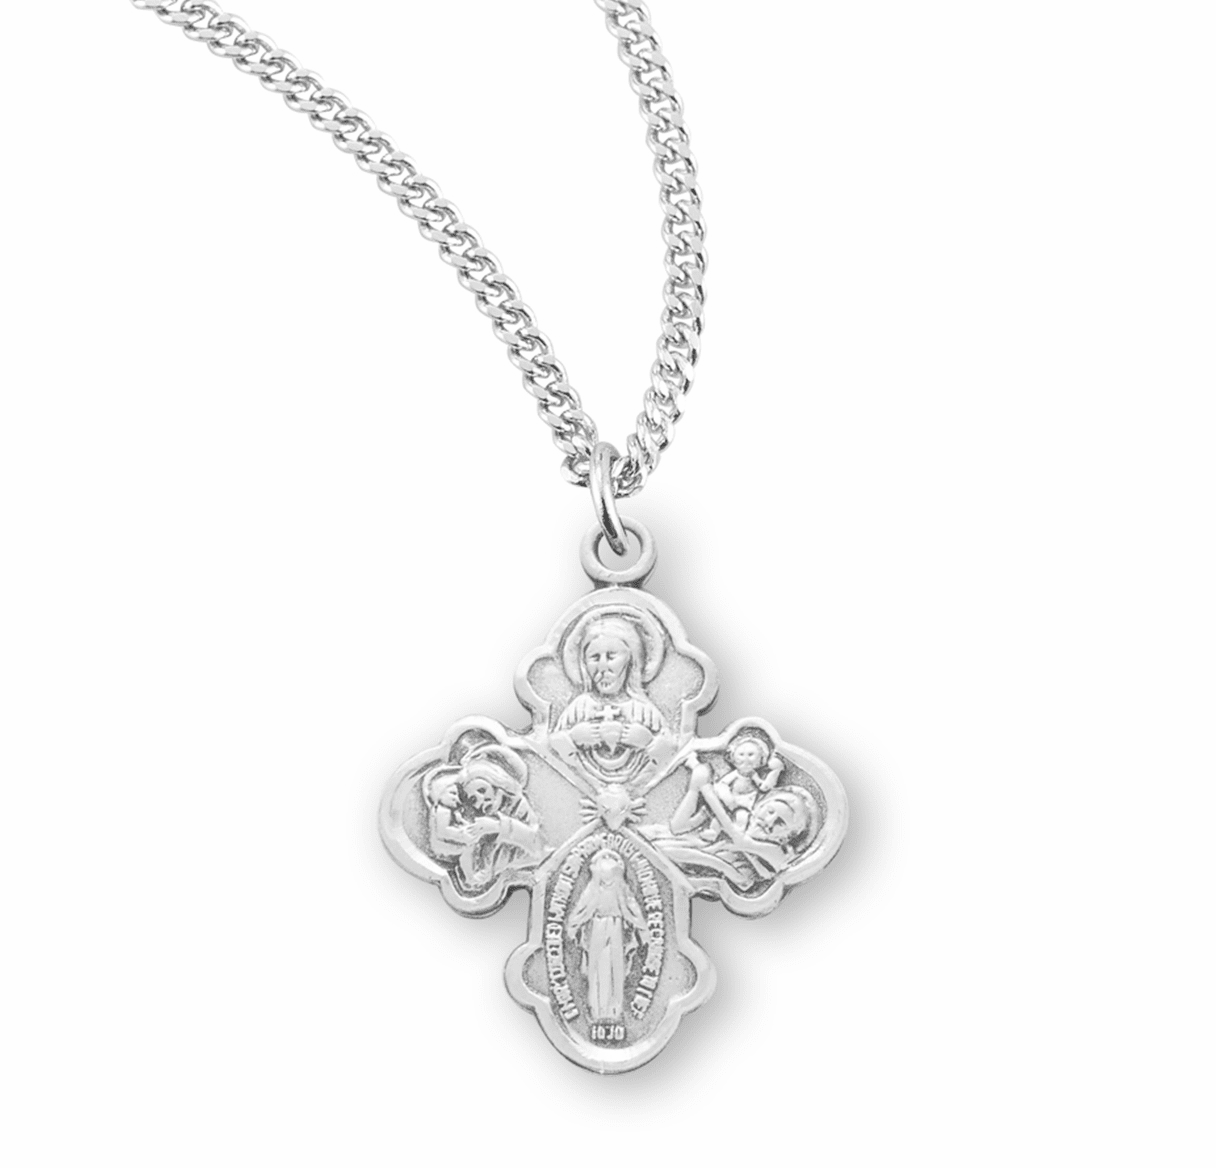 4-Way Cross Medal Necklace w/Sacred Heart Center by HMH Religious